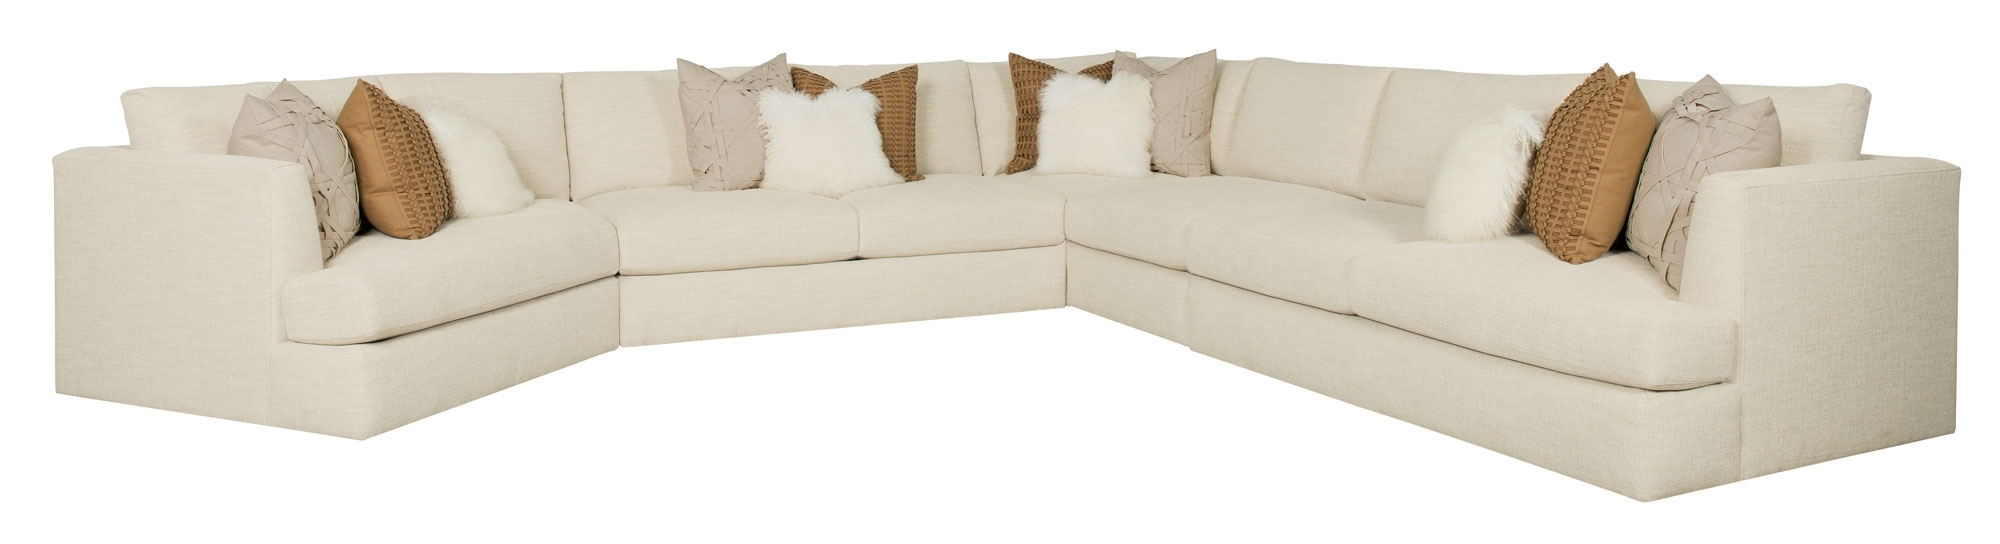 Latest Vt Sectional Sofas With Regard To Furniture : Corner Sofa Rattan Corner Couch Sofa Bed Corner Couch (View 6 of 15)